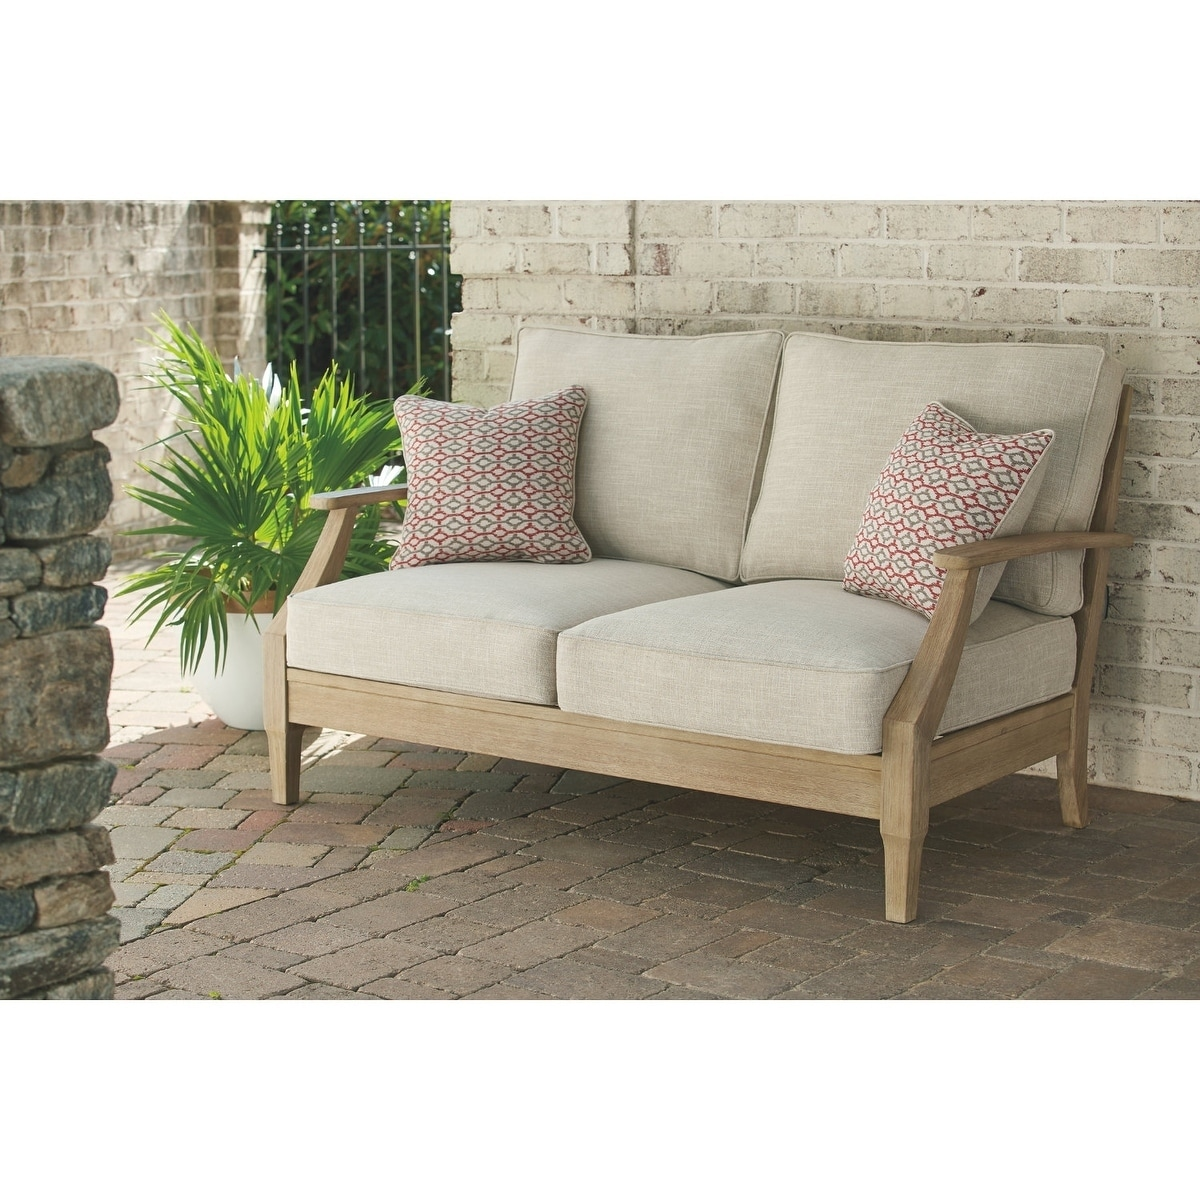 Shop Ashley Furniture Signature Design Clare View Outdoor Loveseat W